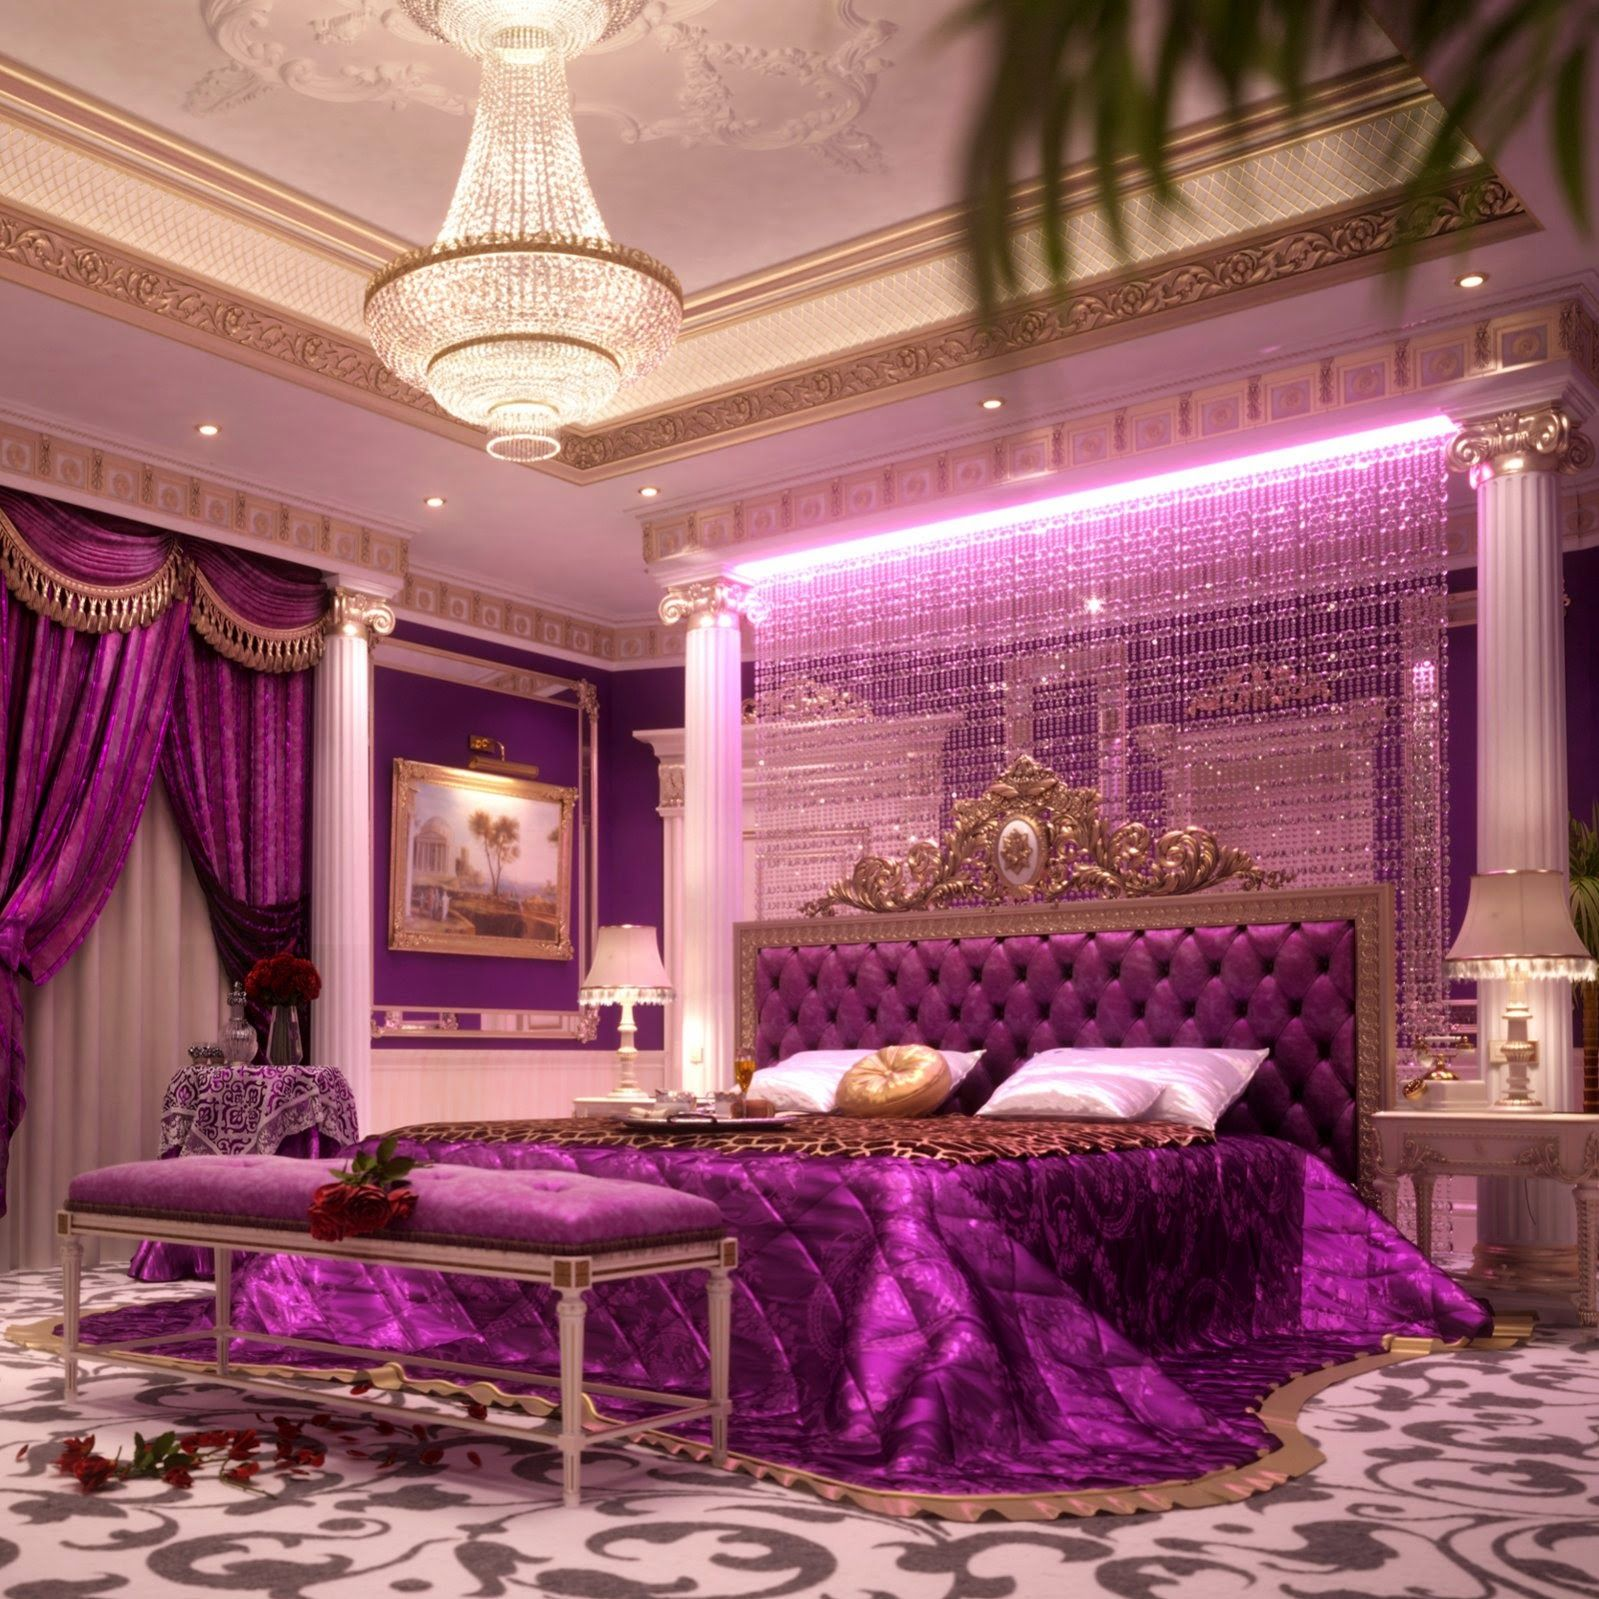 Image result for royal bedroom | Purple bedrooms, Remodel ...